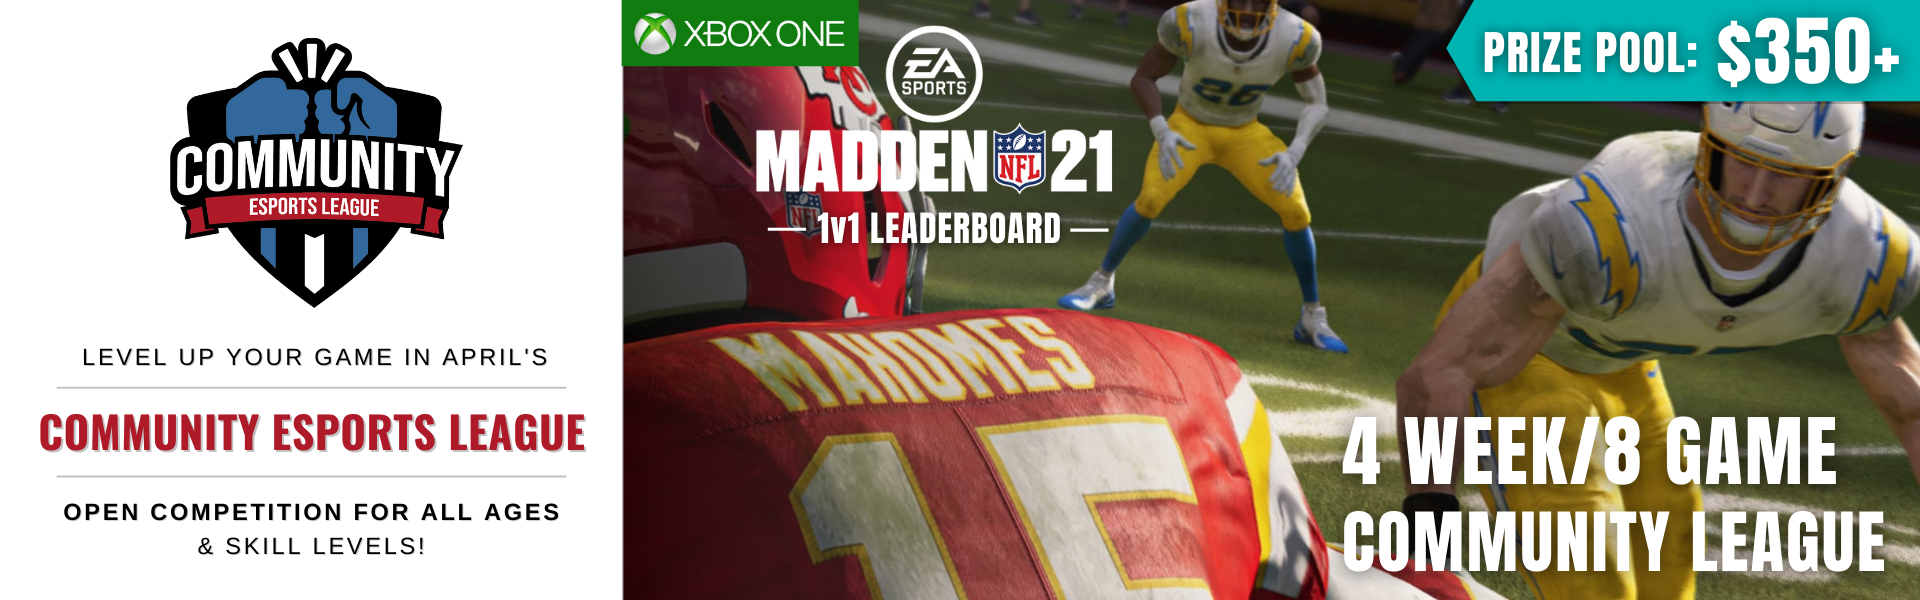 April CEL: Featuring Madden 21 - Xbox One